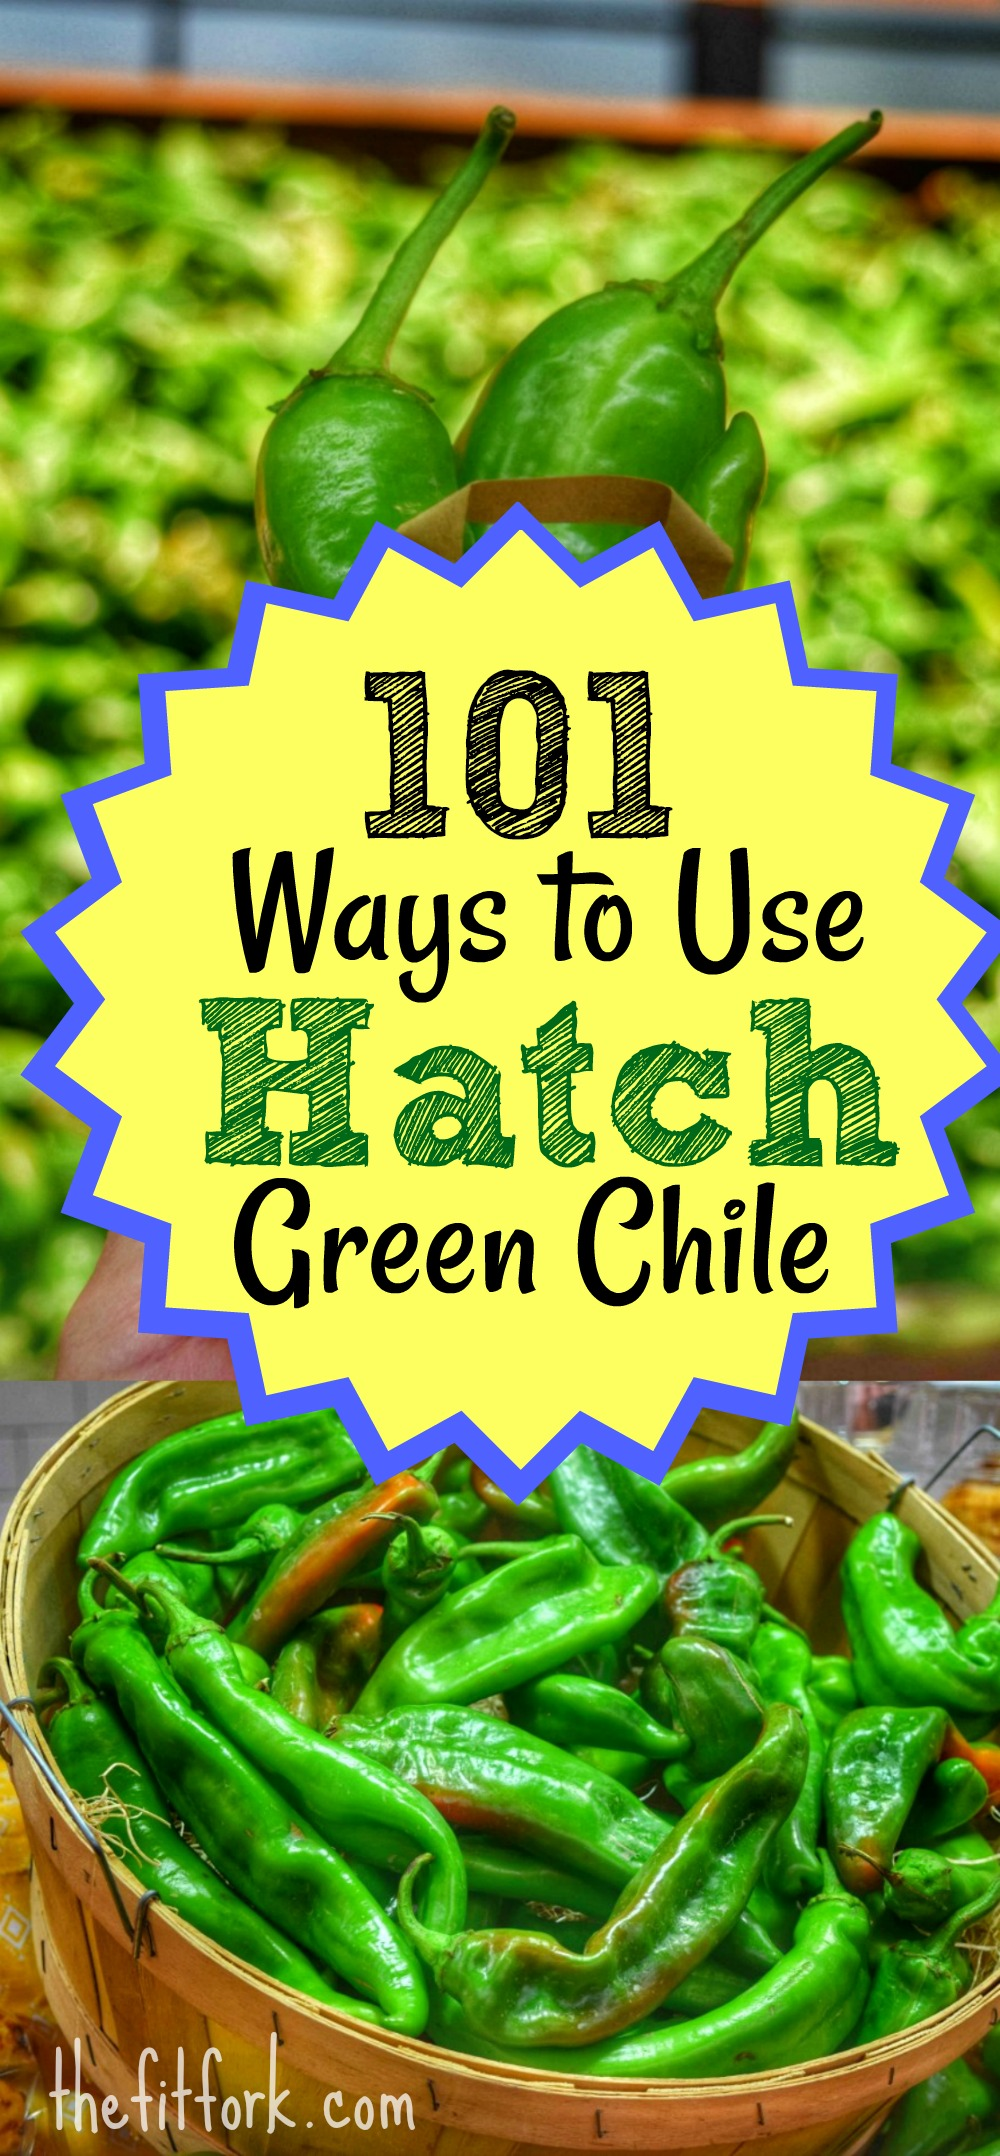 How to make grandma's macaroni salad · add cold elbow macaroni noodles, eggs, and diced stalks celery in a mixing bowl and mix well. 101 Ways to Use Hatch Green Chile + Central Market